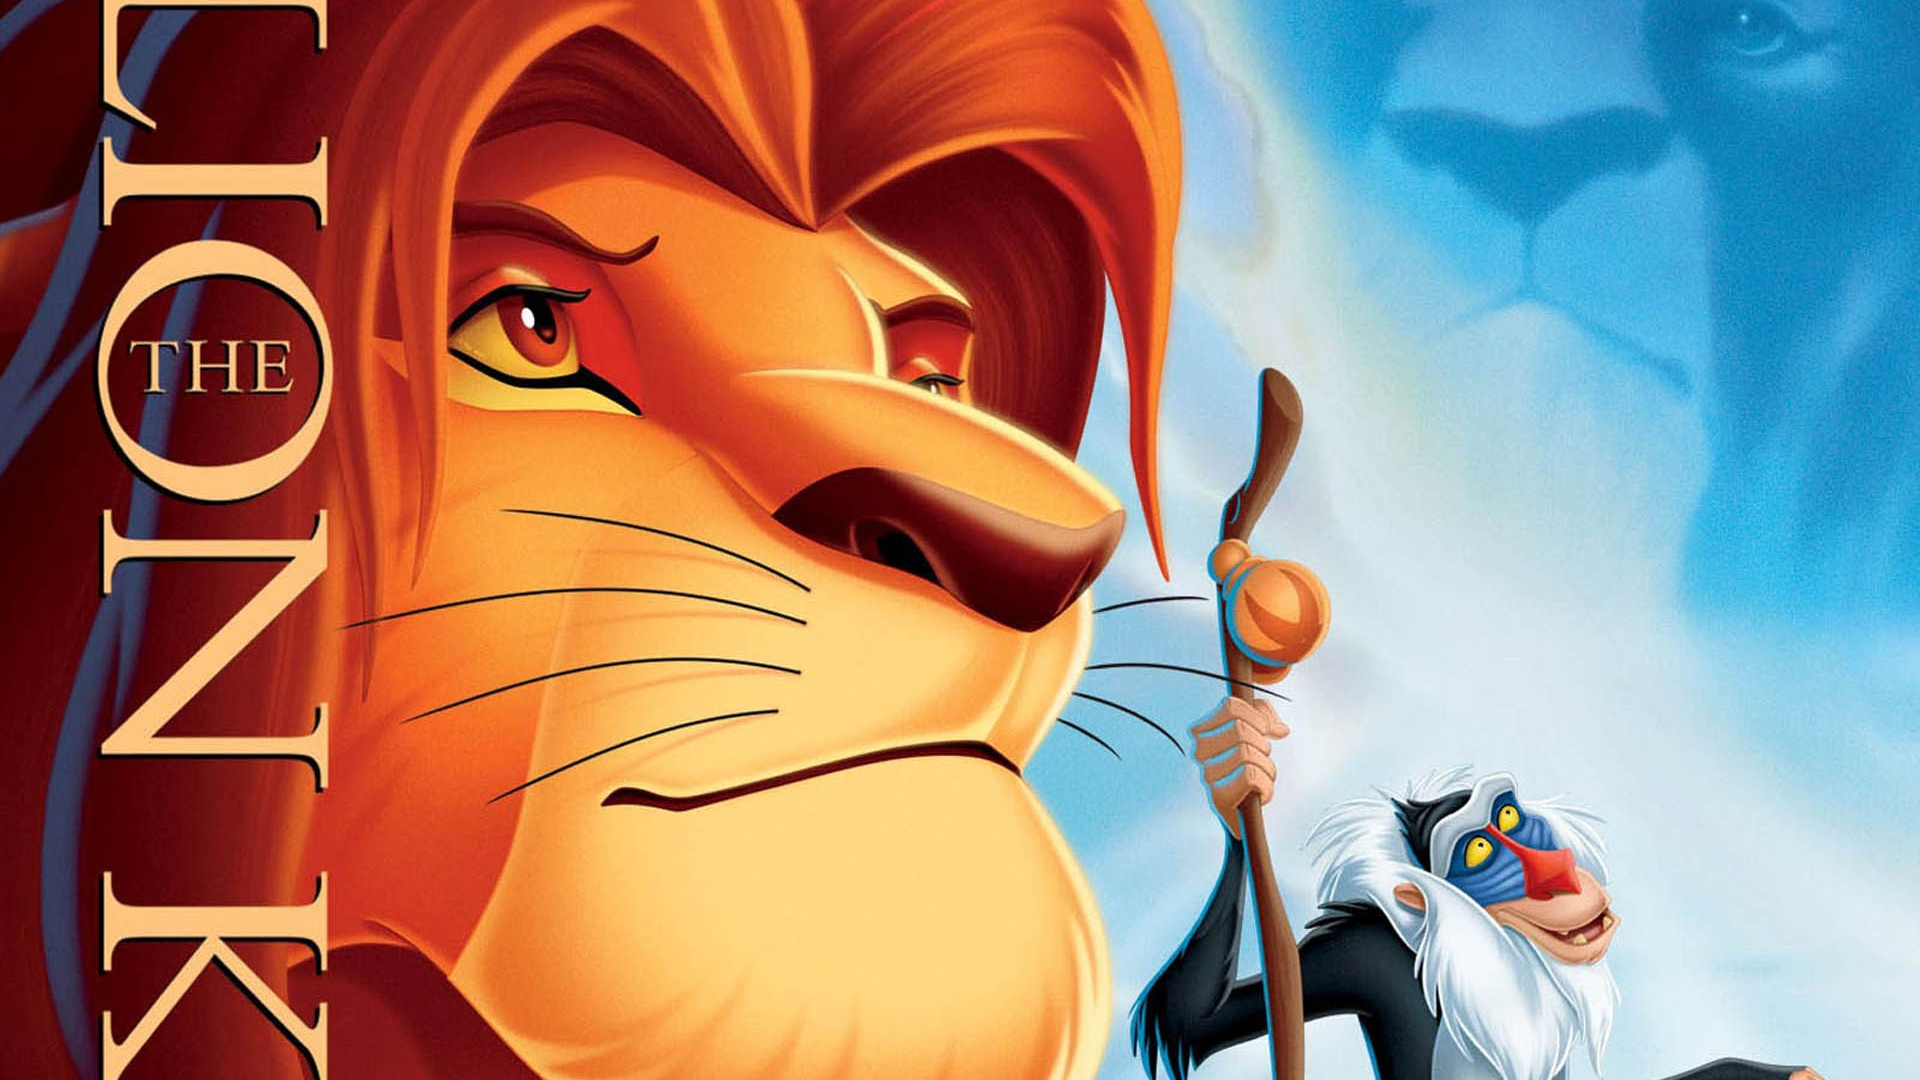 1920x1080 the lion king hd desktop pc and mac wallpaper